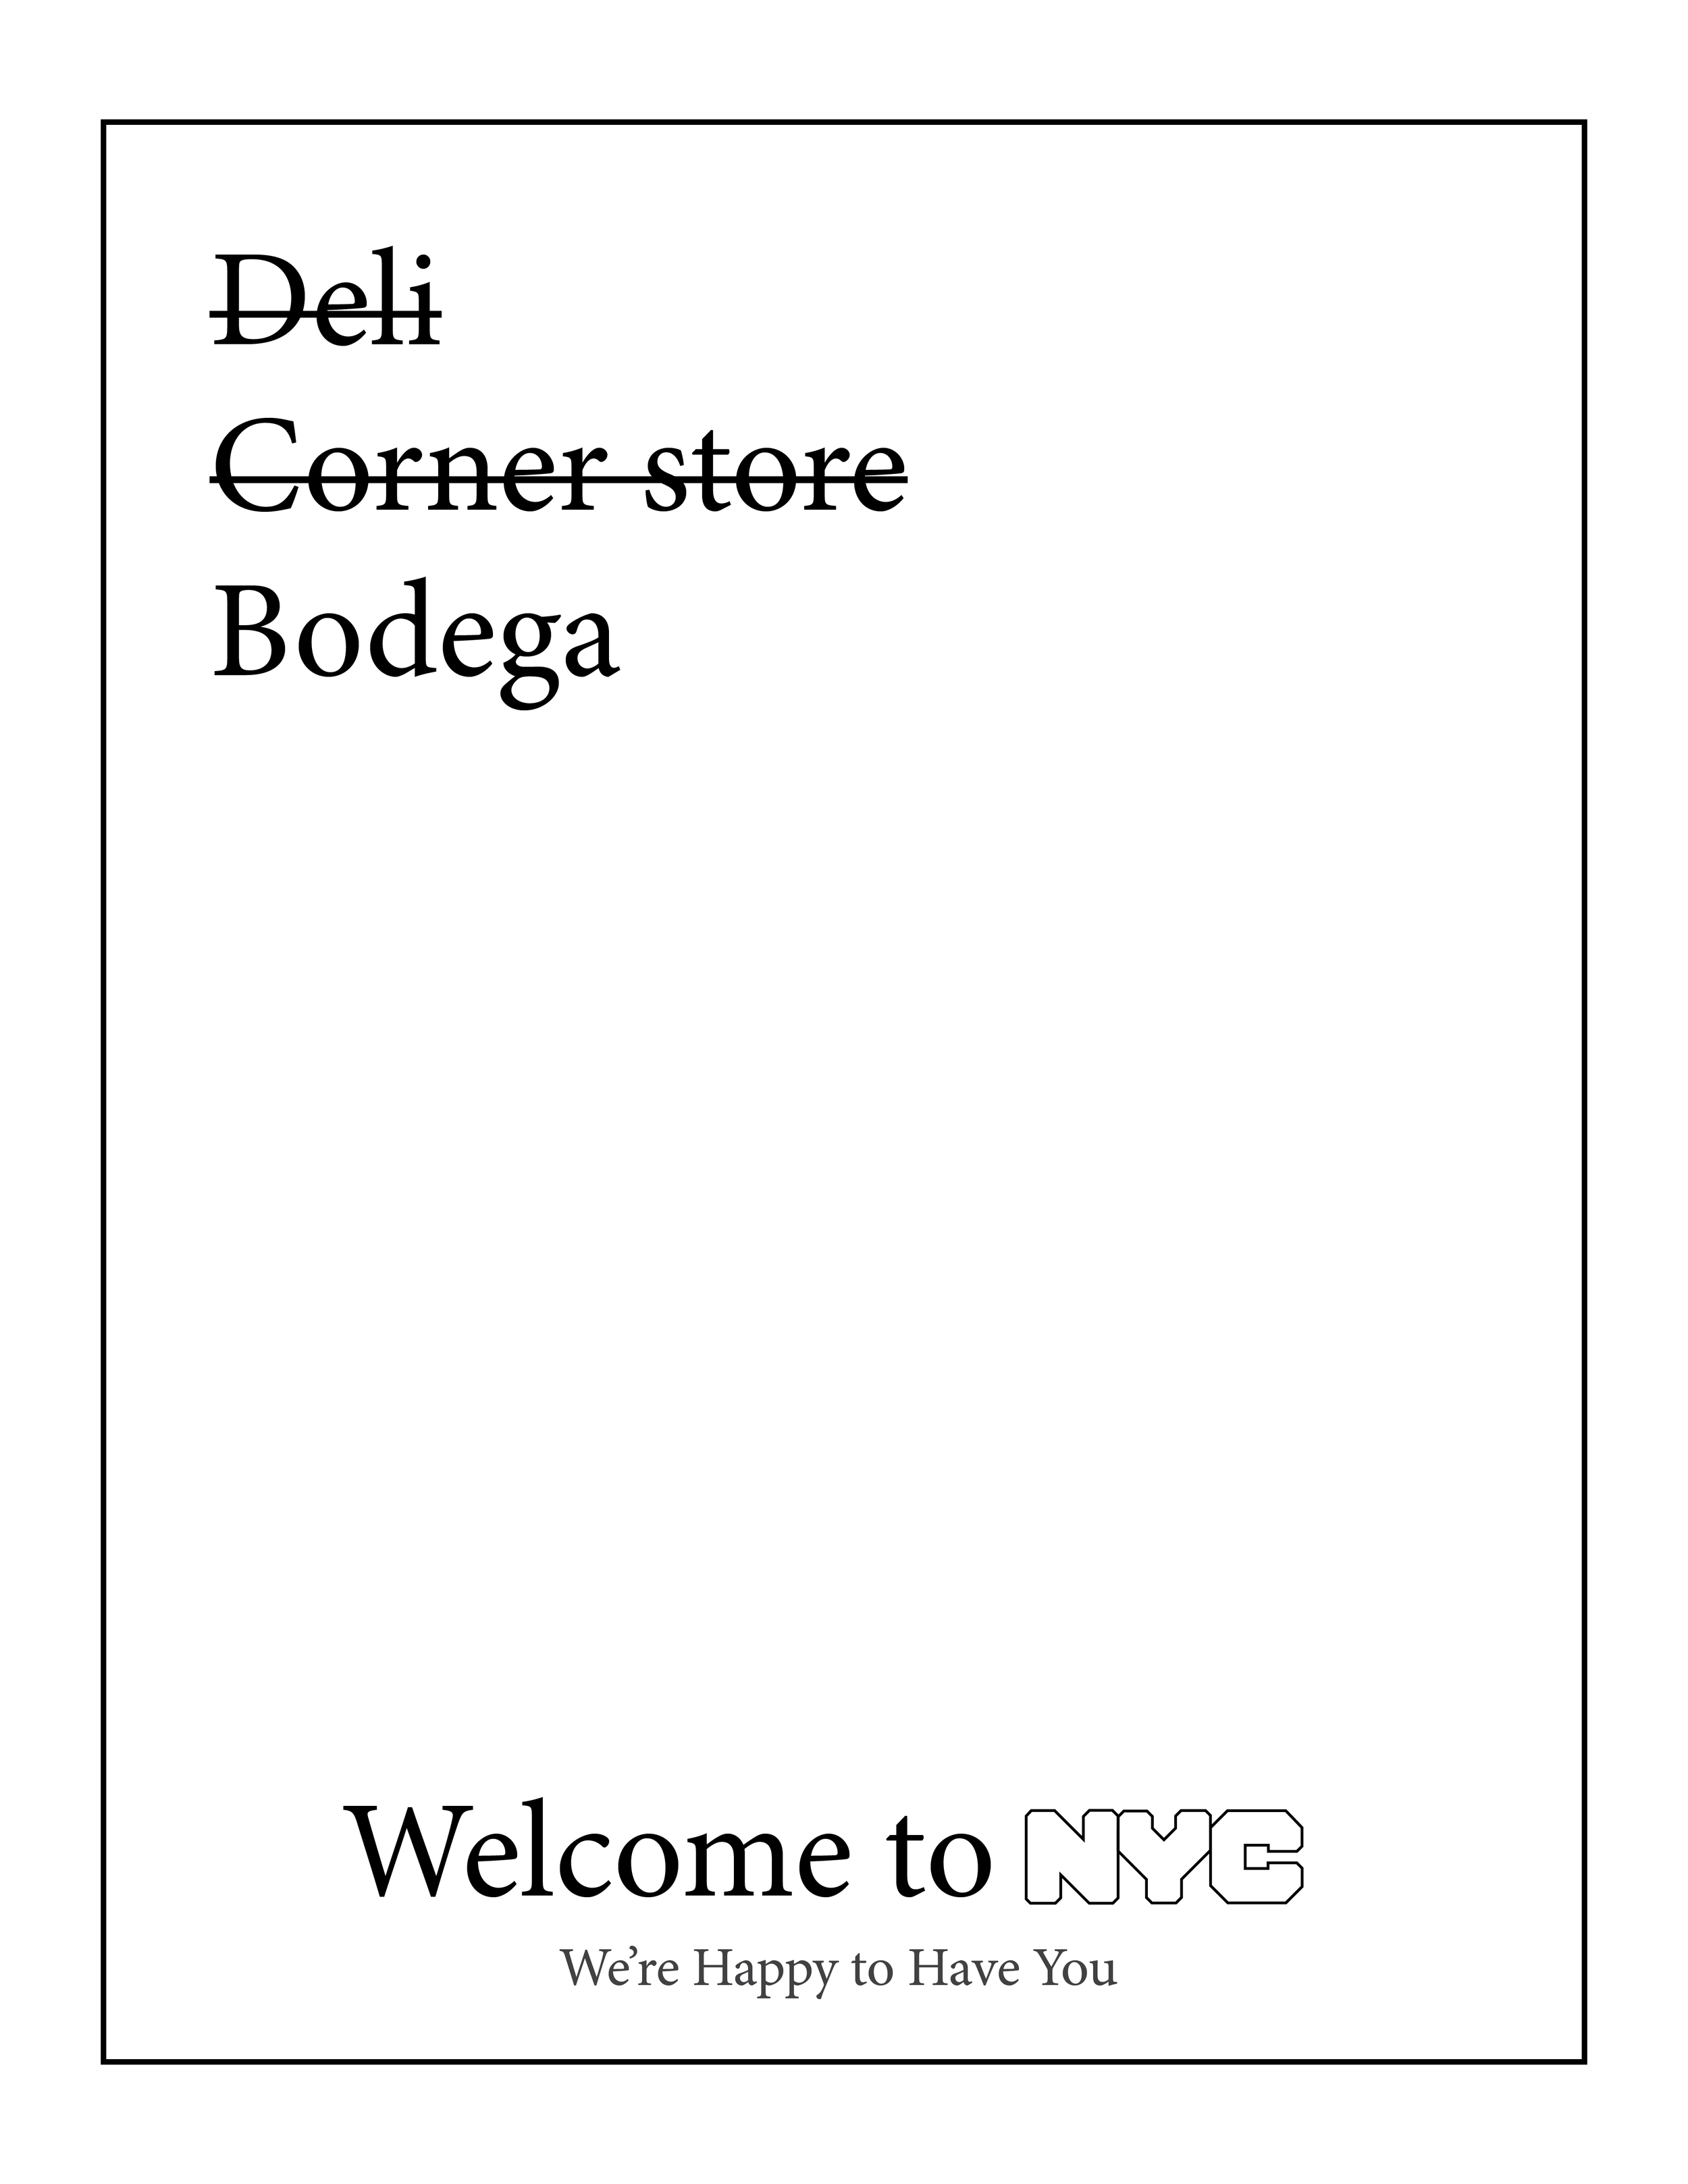 Welcome to NYC We're Happy to Have You - Bodega Letter Size.png